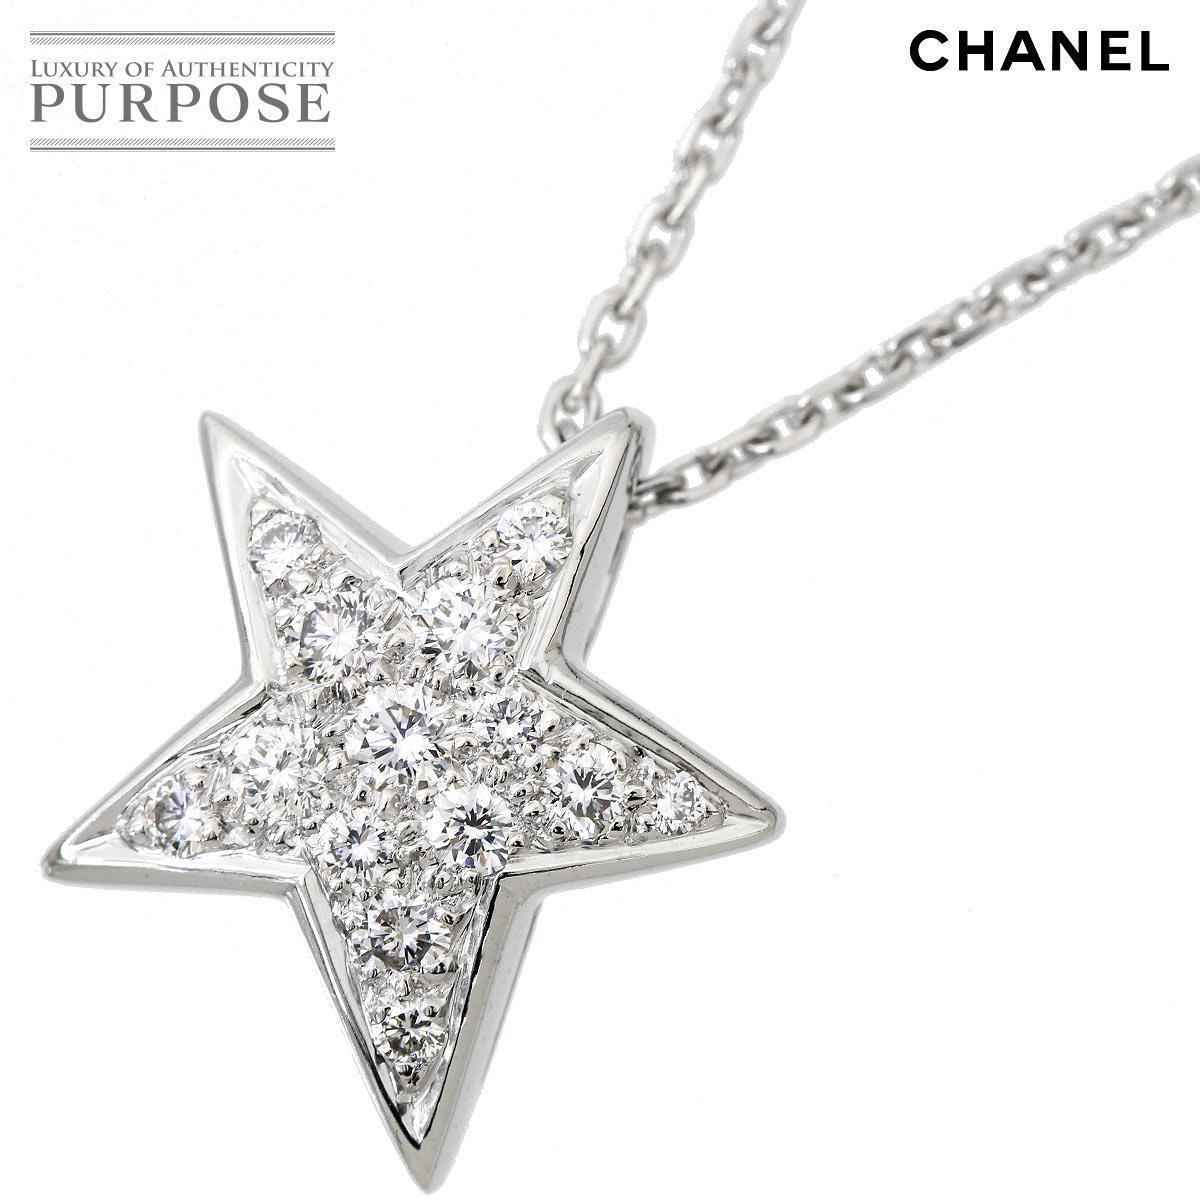 Chanel Chanel Comet Diamond Necklace 41cm (medium Model) K18wg 18 Karat Gold White Gold 750 Star Star For 2020 Medium Diamond Necklaces (View 9 of 25)